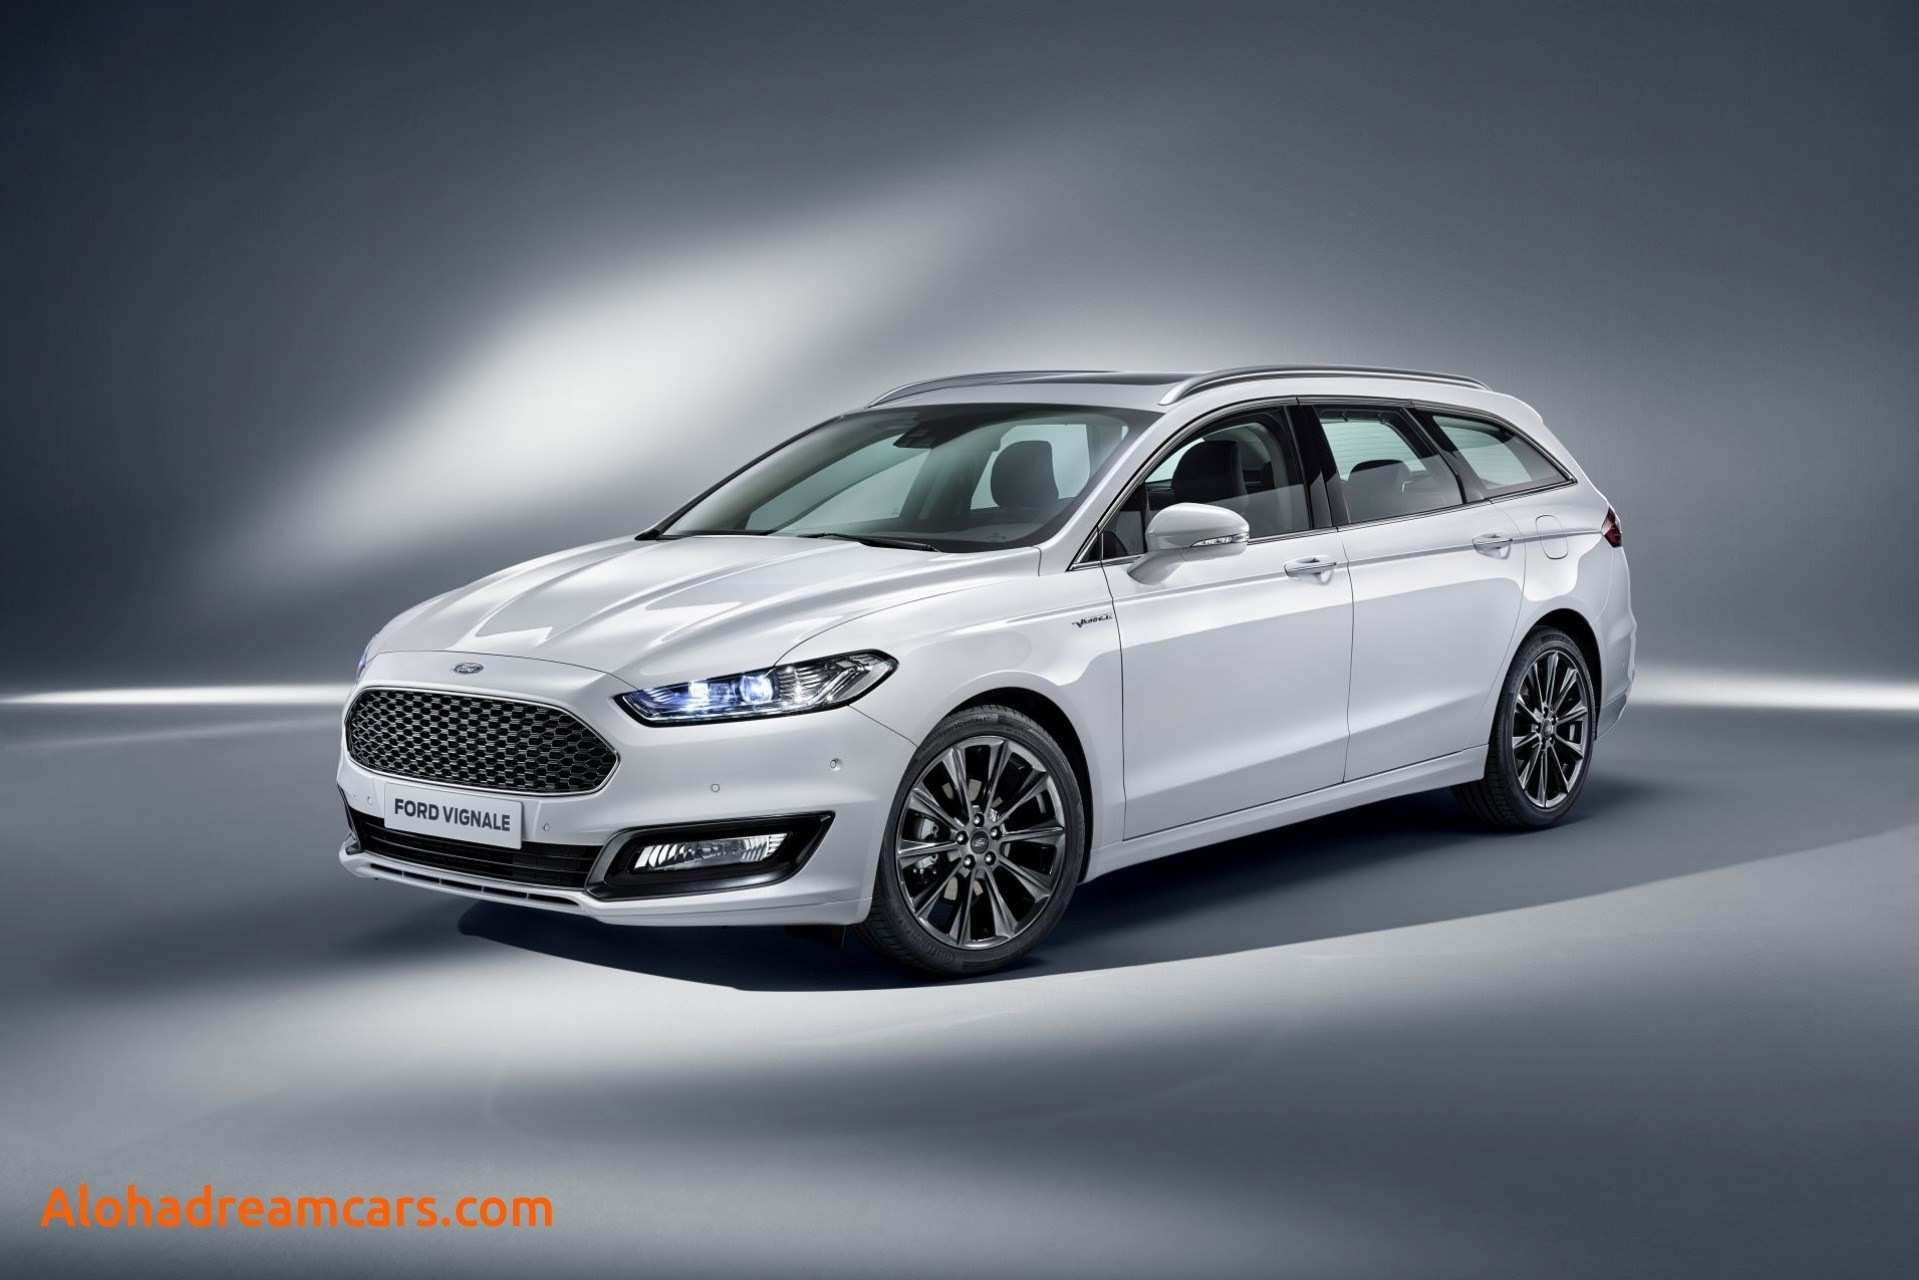 28 Concept of 2020 Ford Mondeo Vignale Photos by 2020 Ford Mondeo Vignale